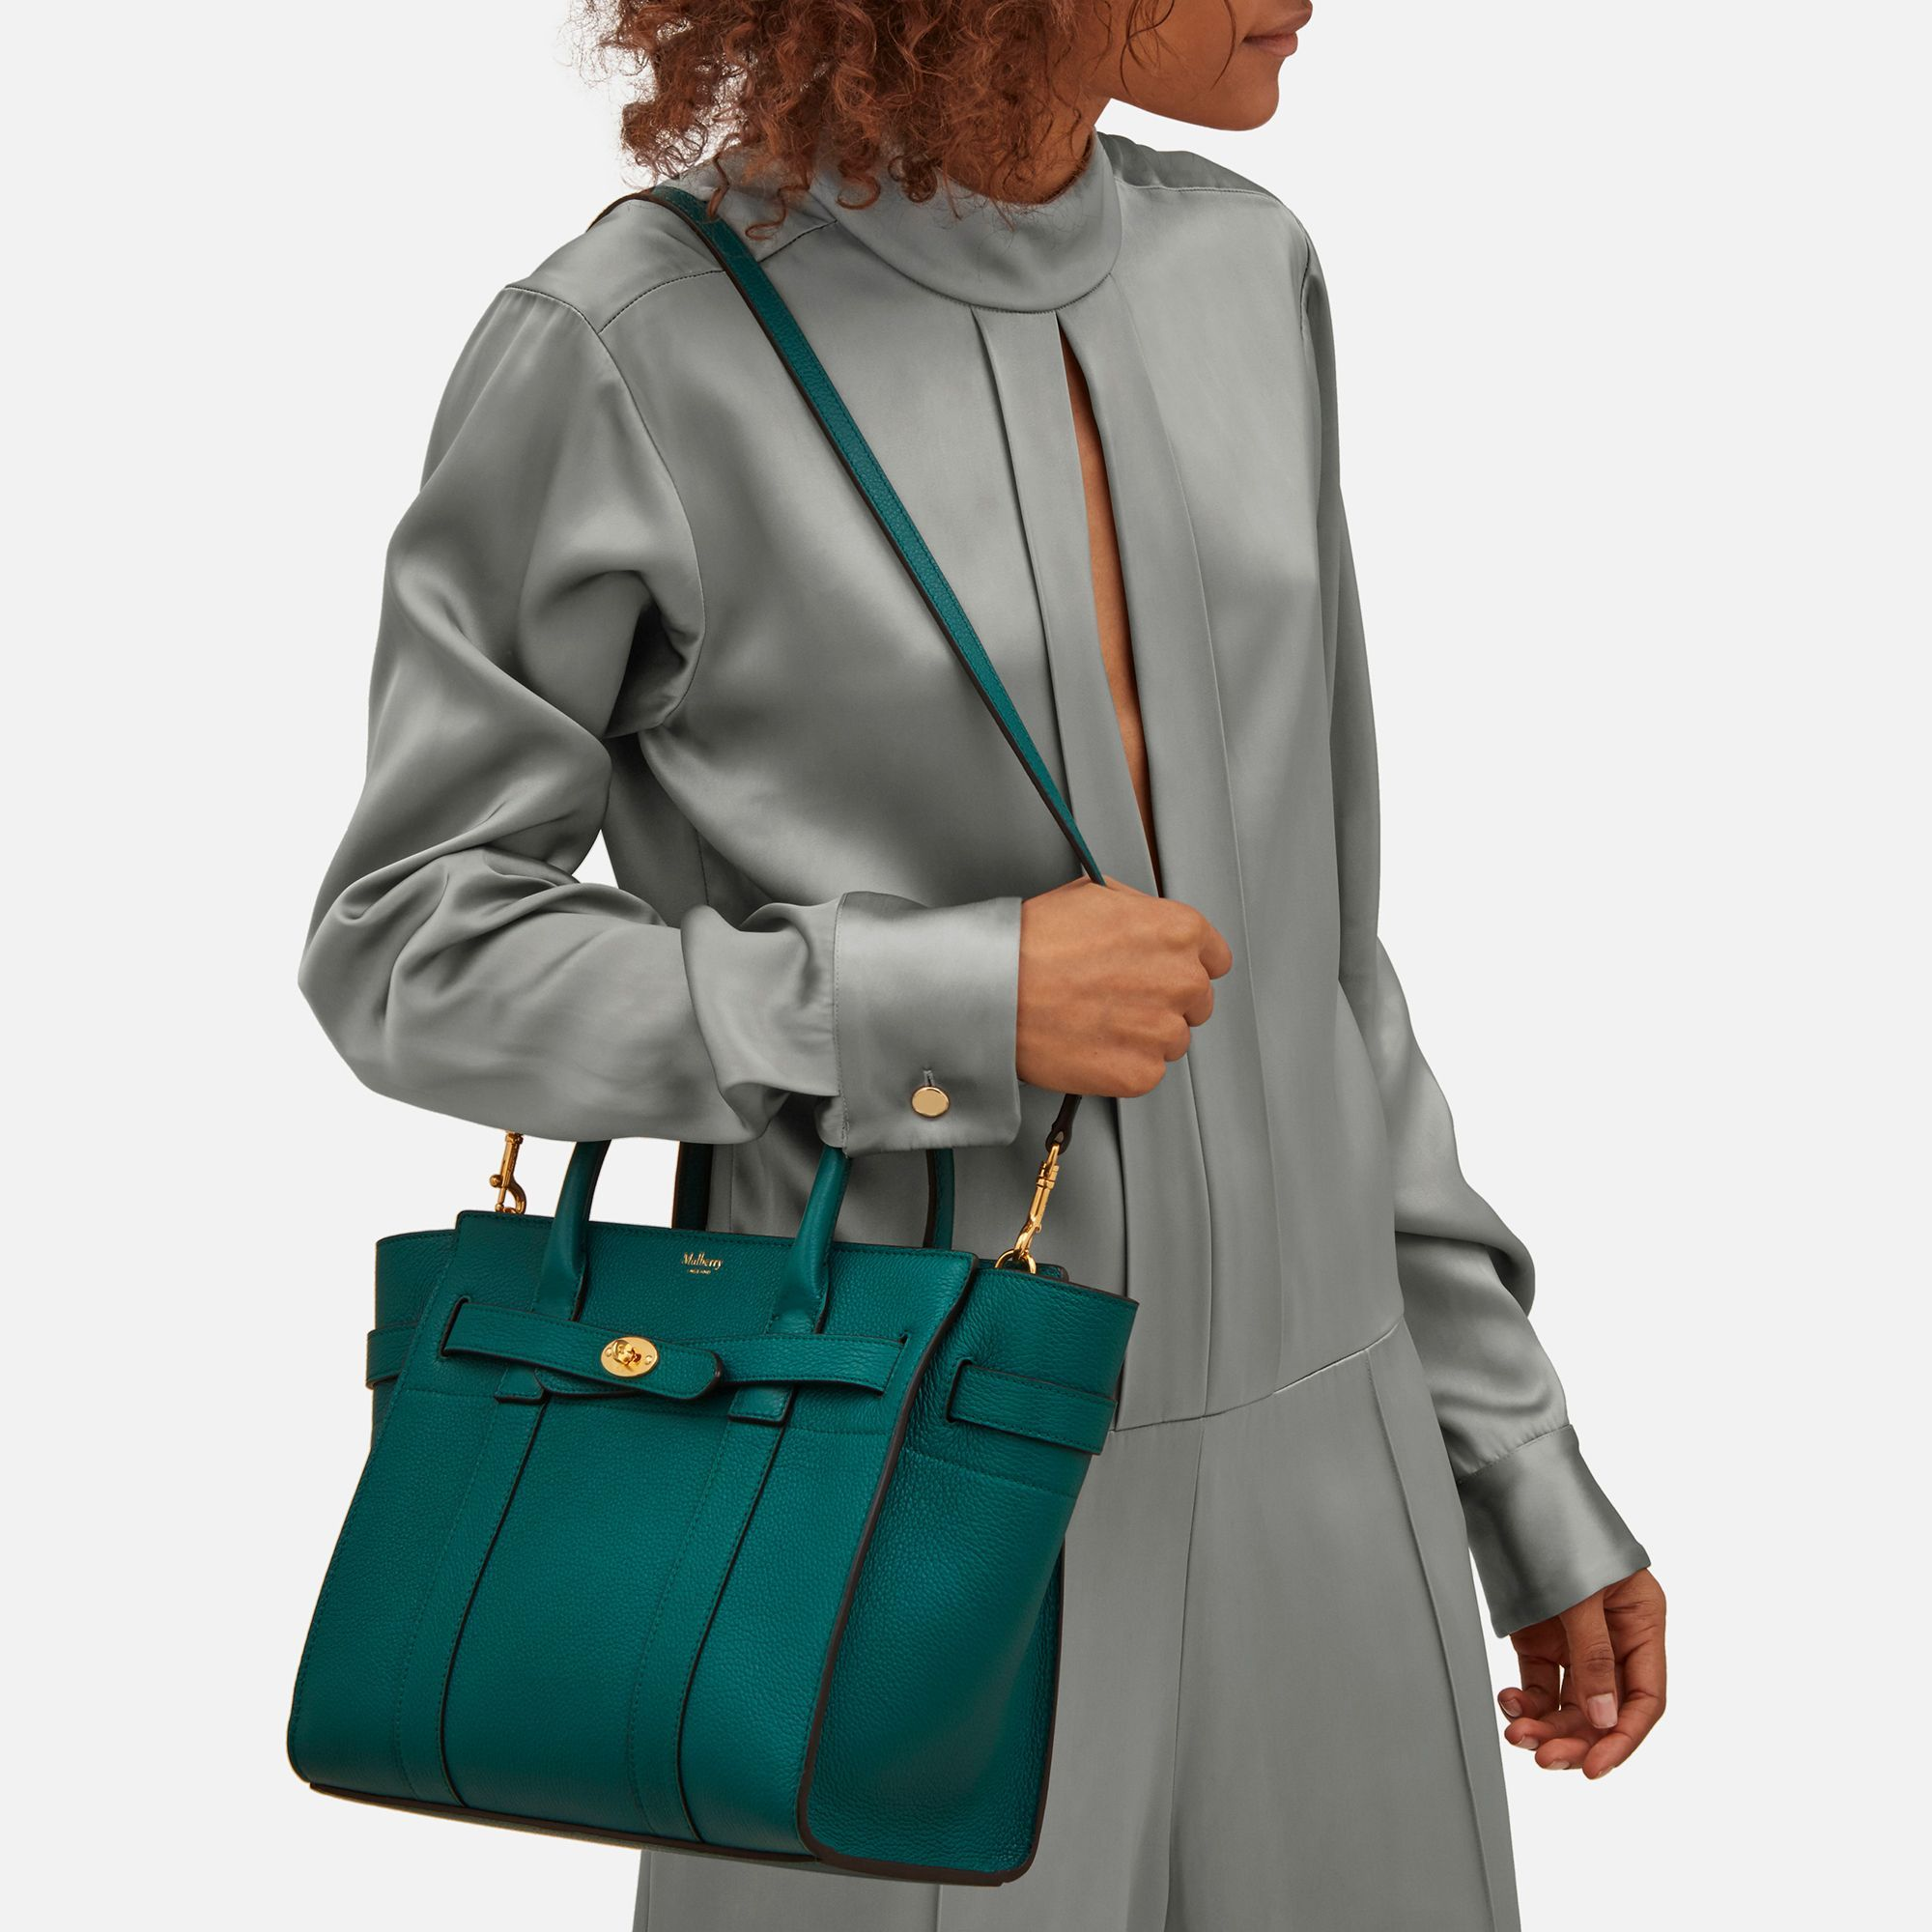 4ebedd04931 australia 2017 new mulberry lily shoulder bag ocean green grained calf  leather ae1e9 73eb1; discount small zipped bayswater ocean green small  classic grain ...